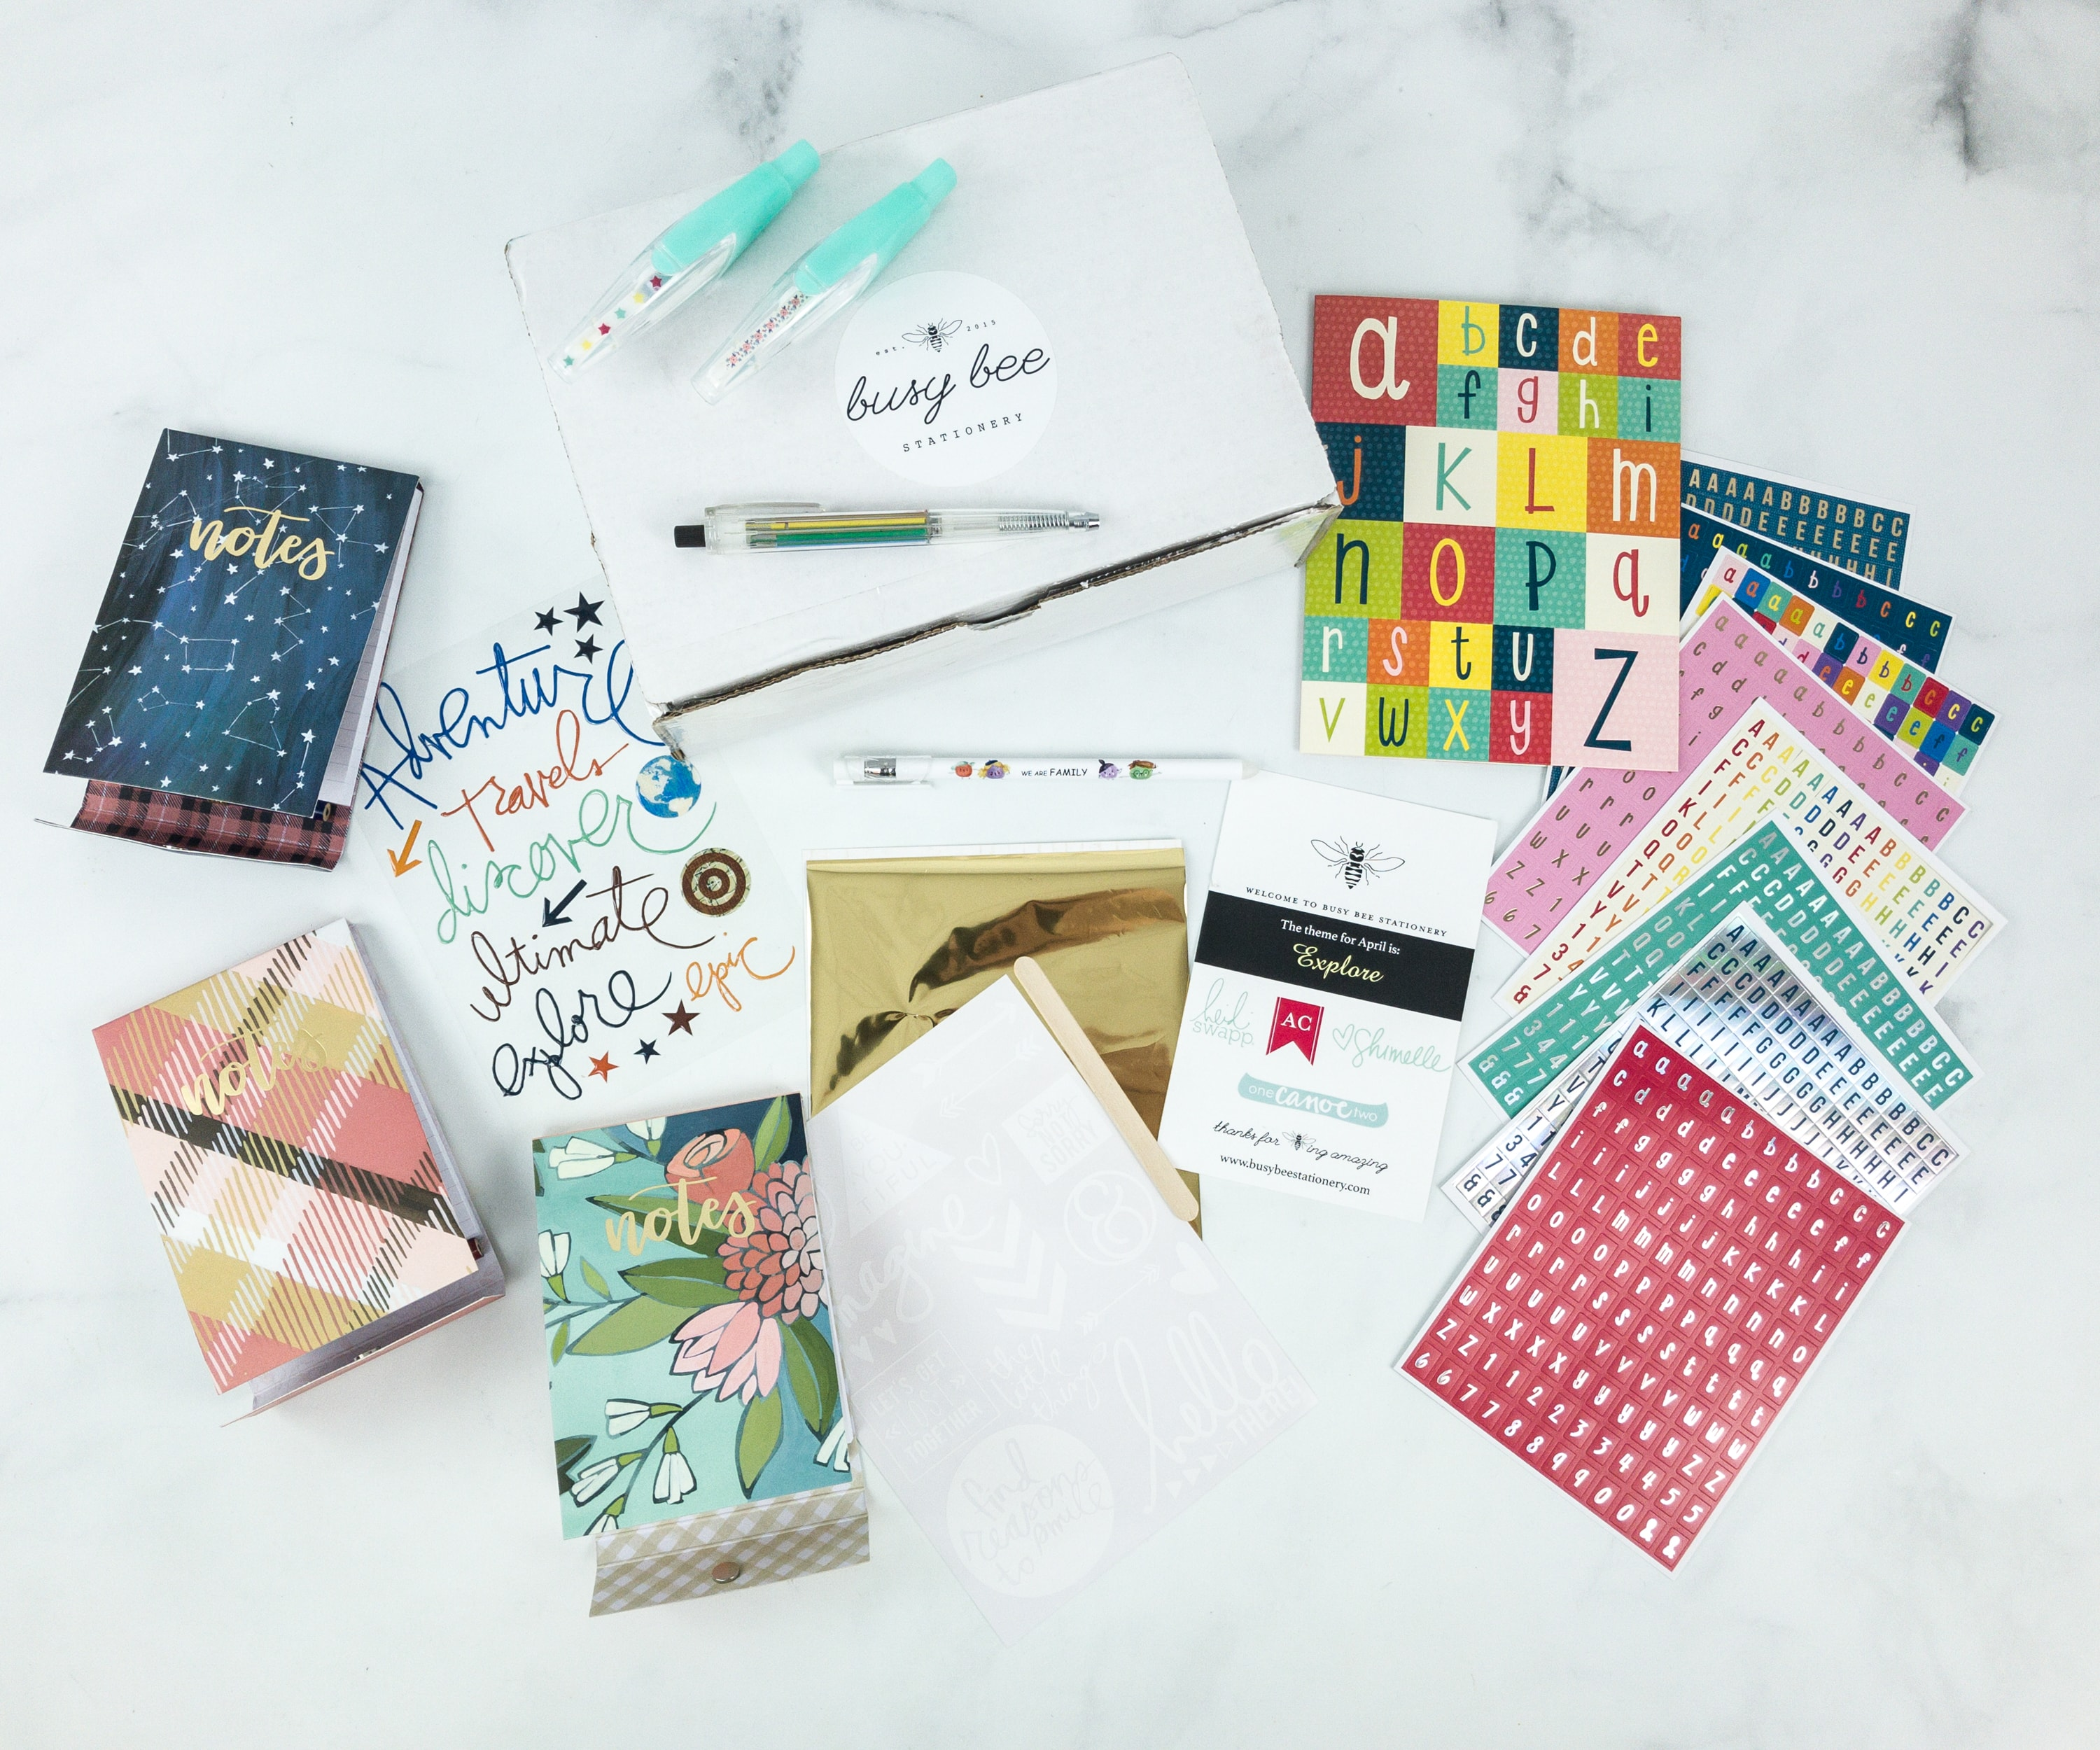 Busy Bee Stationery April 2019 Subscription Box Review